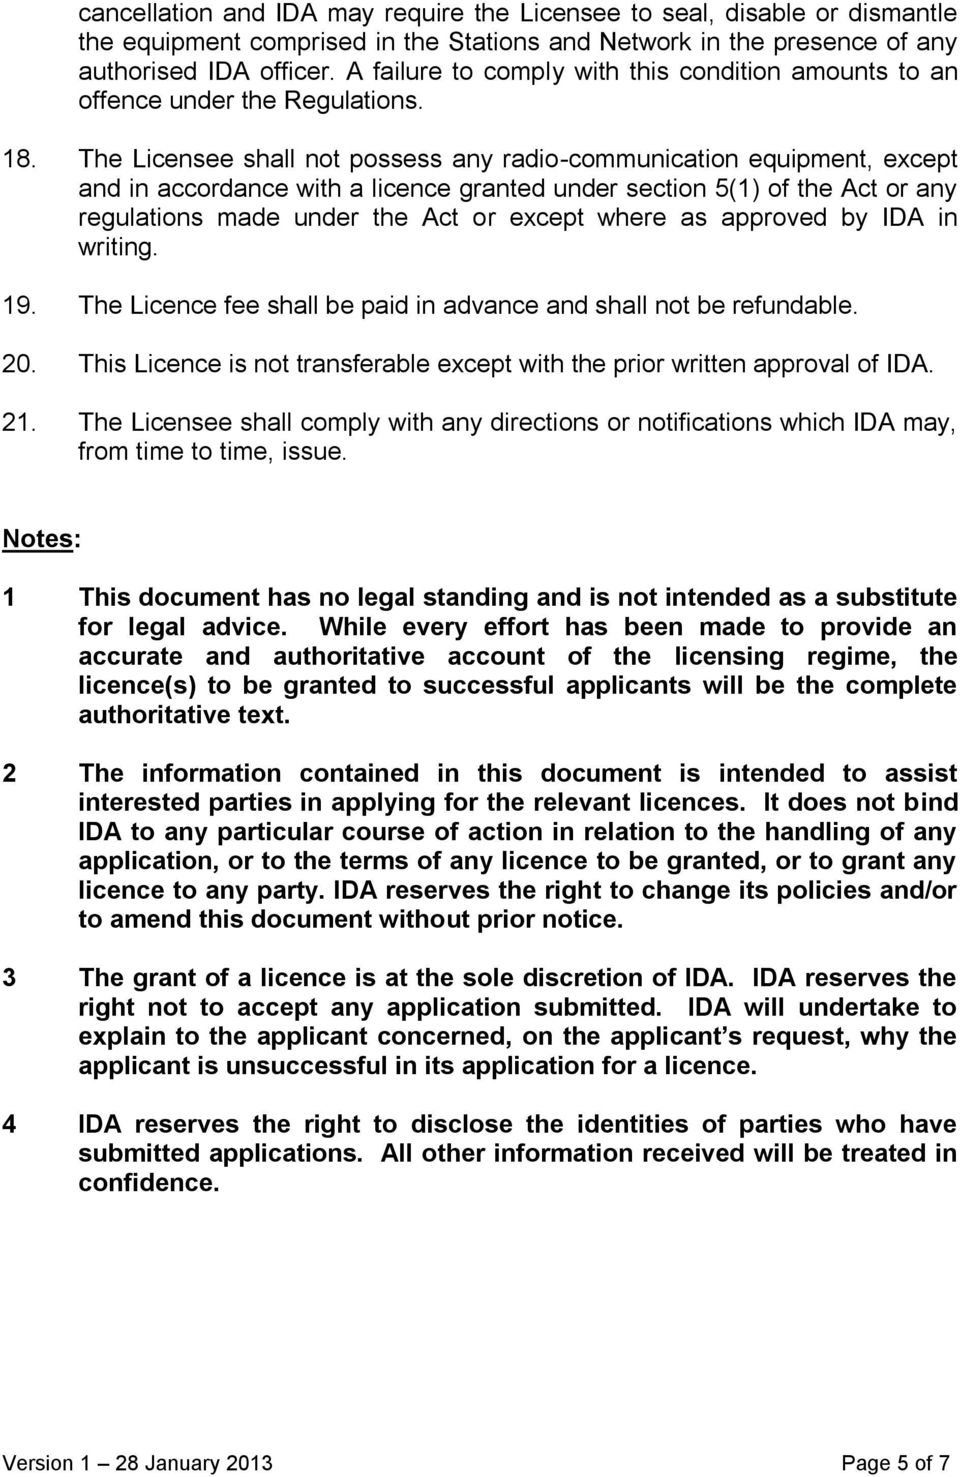 The Licensee shall not possess any radio-communication equipment, except and in accordance with a licence granted under section 5(1) of the Act or any regulations made under the Act or except where